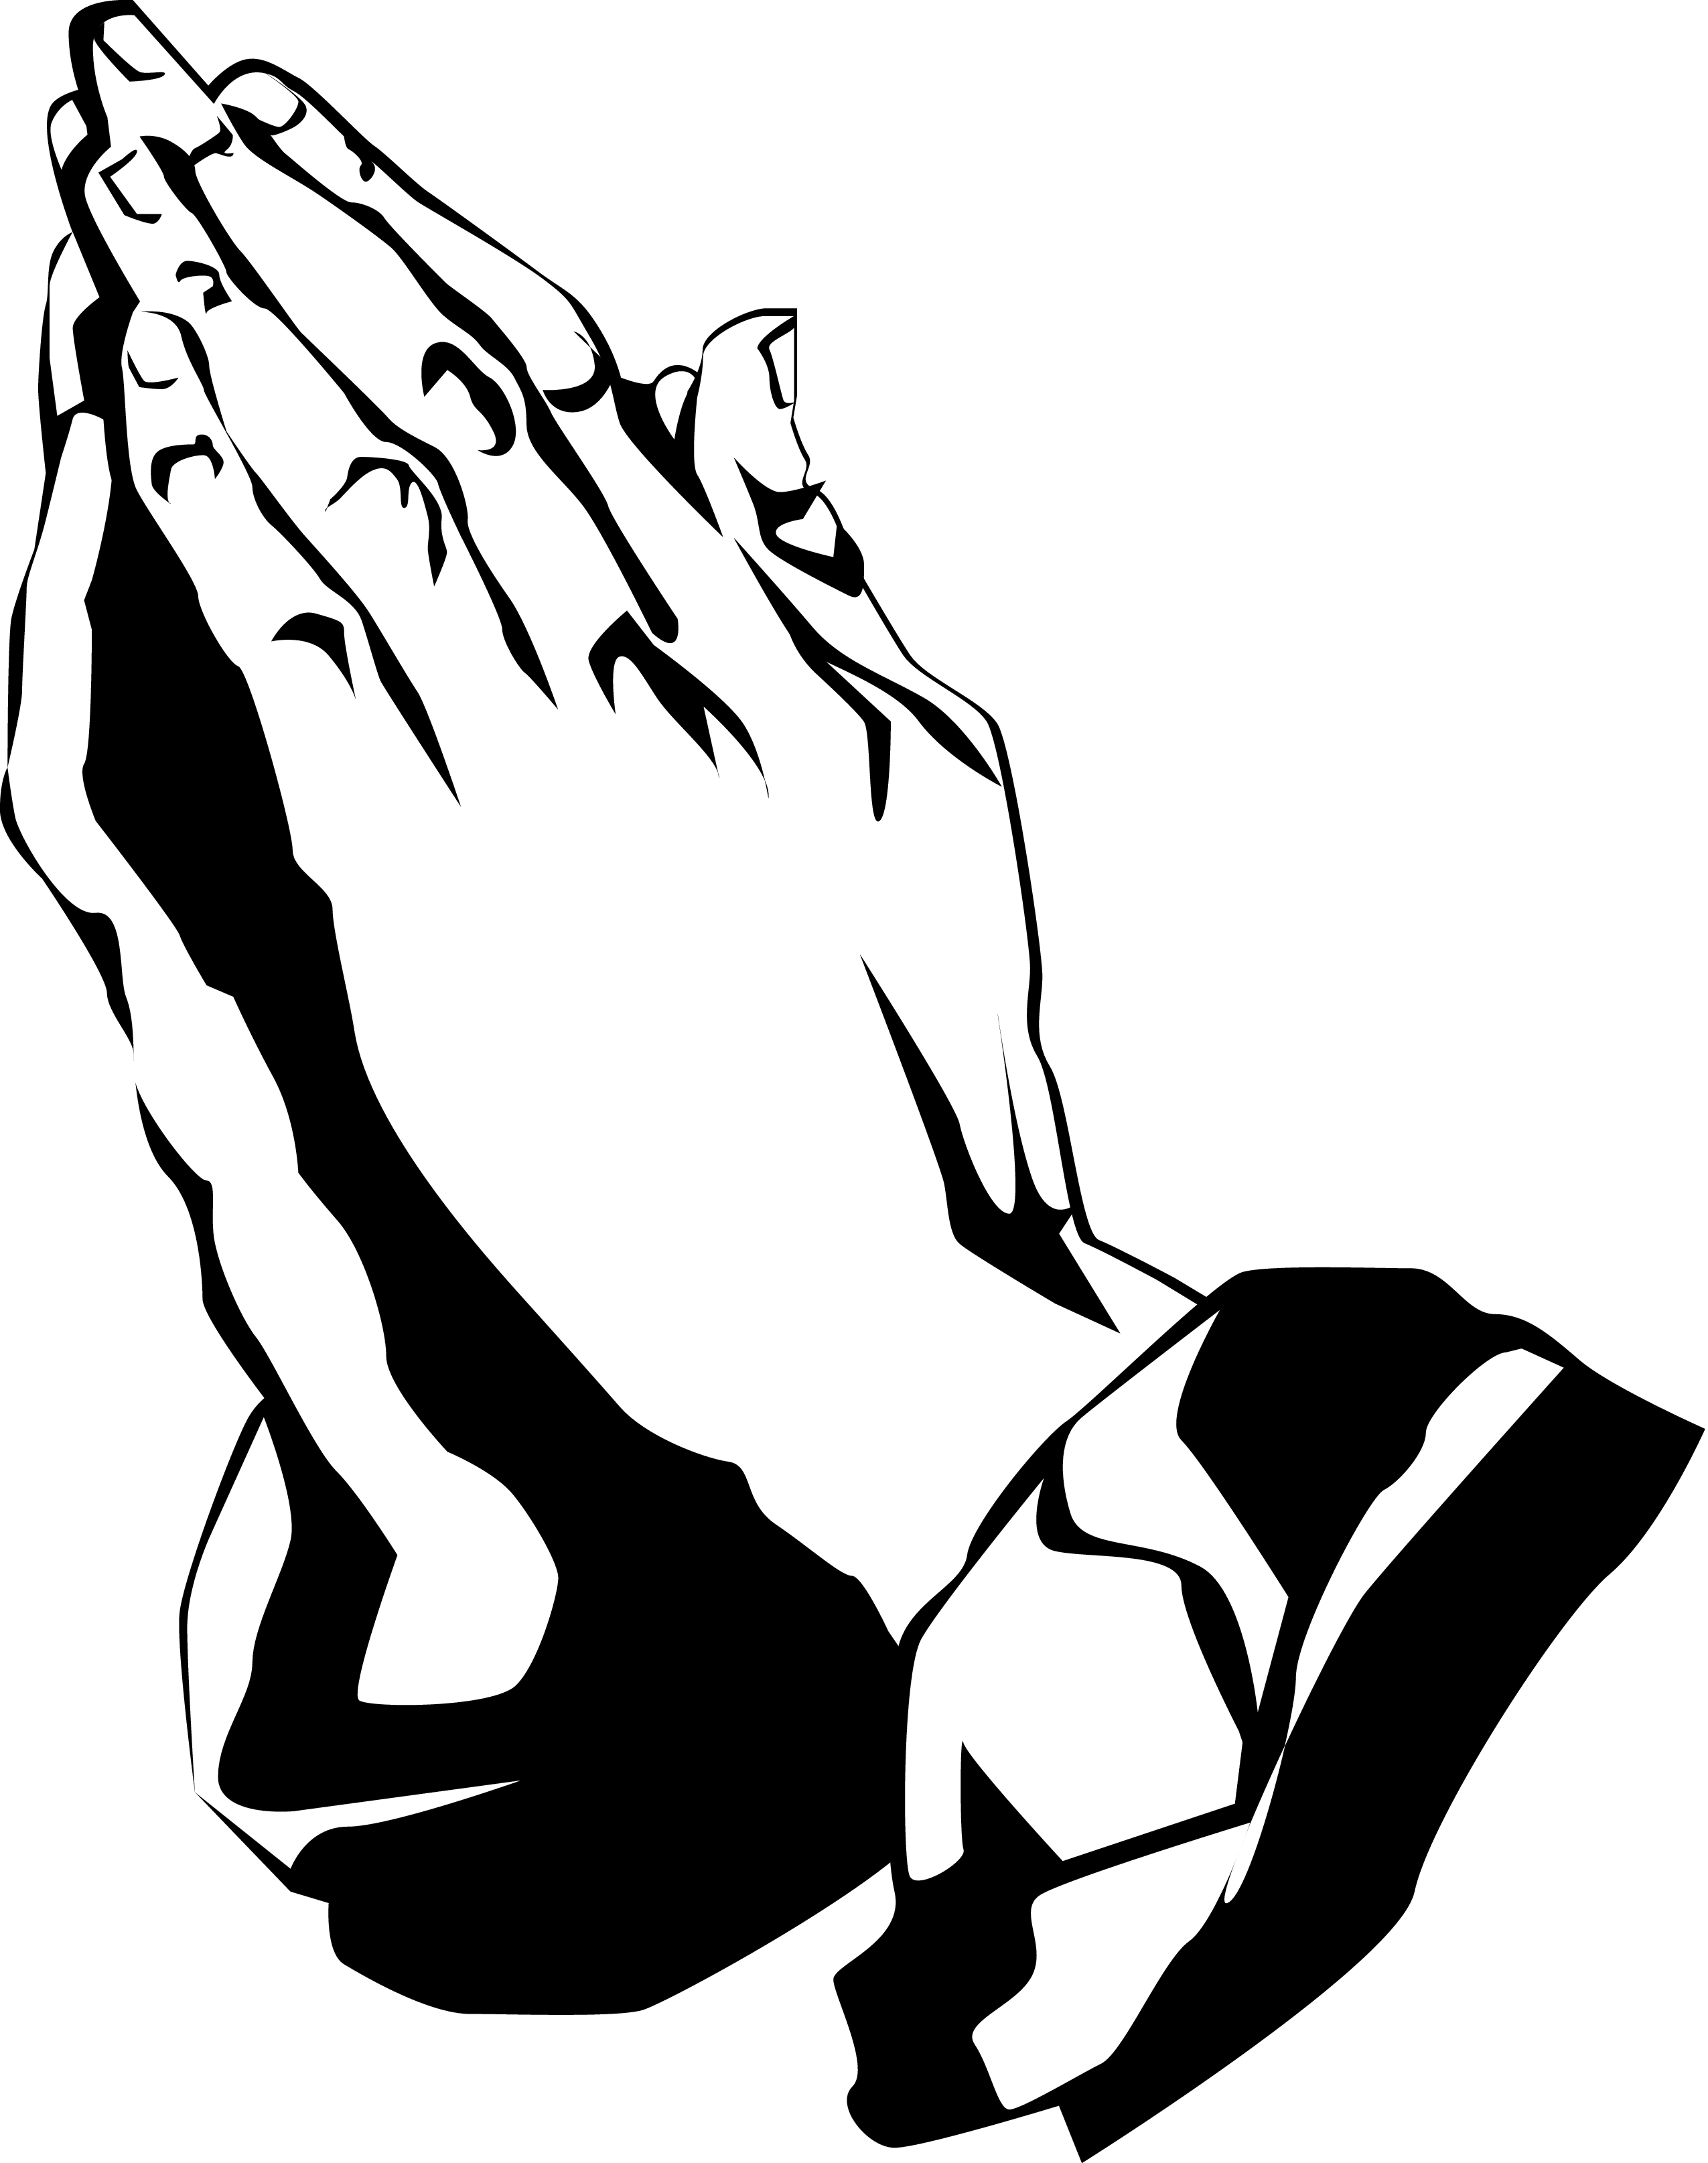 hands open drawing at getdrawings com free for personal use hands rh getdrawings com praying hands prayer clipart praying hands prayer clipart